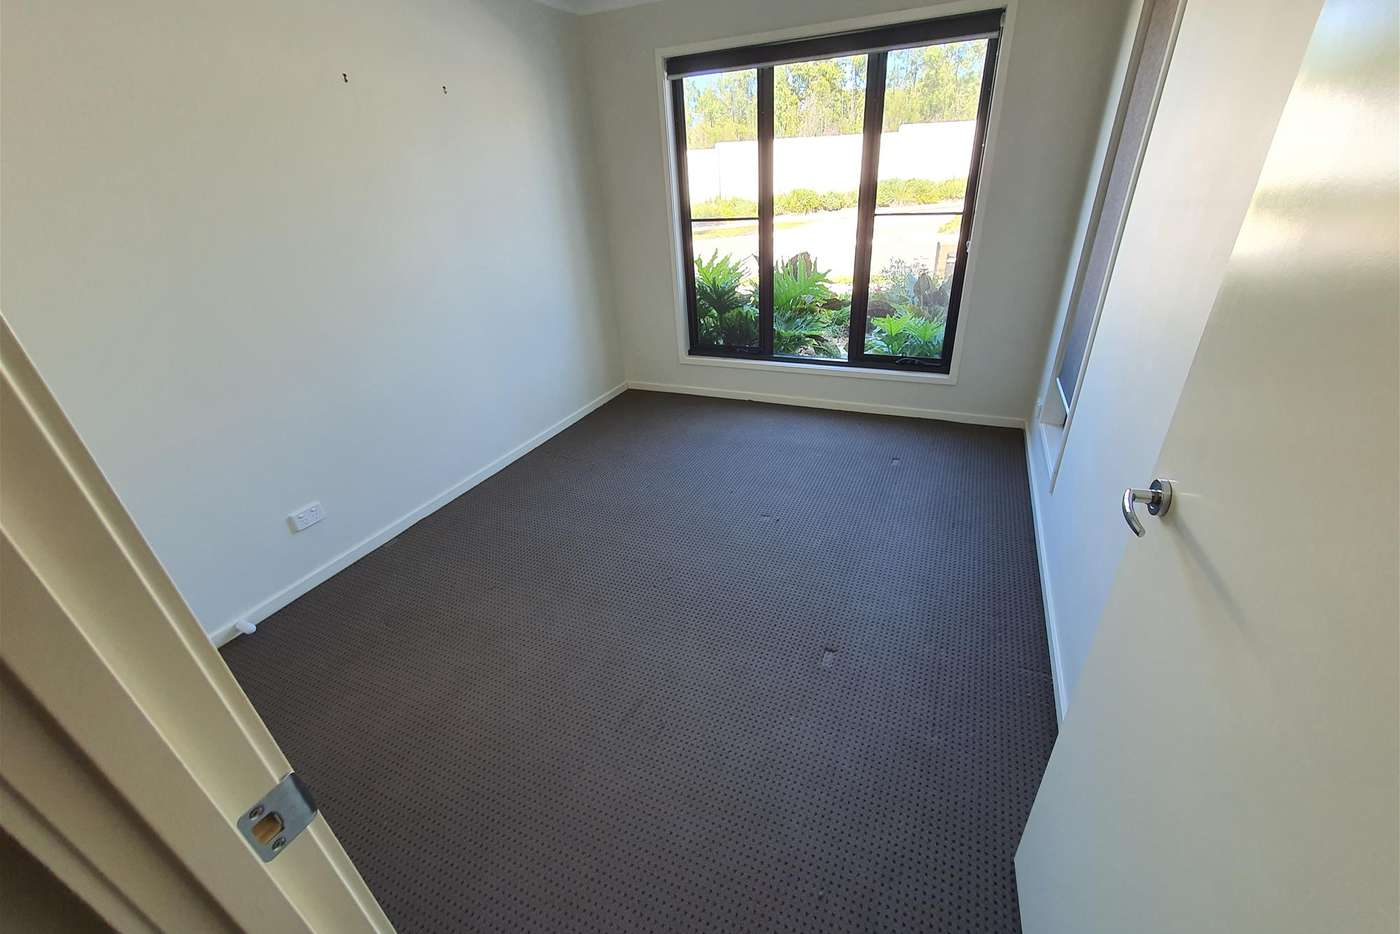 Sixth view of Homely house listing, 35 Everglade Street, Yarrabilba QLD 4207